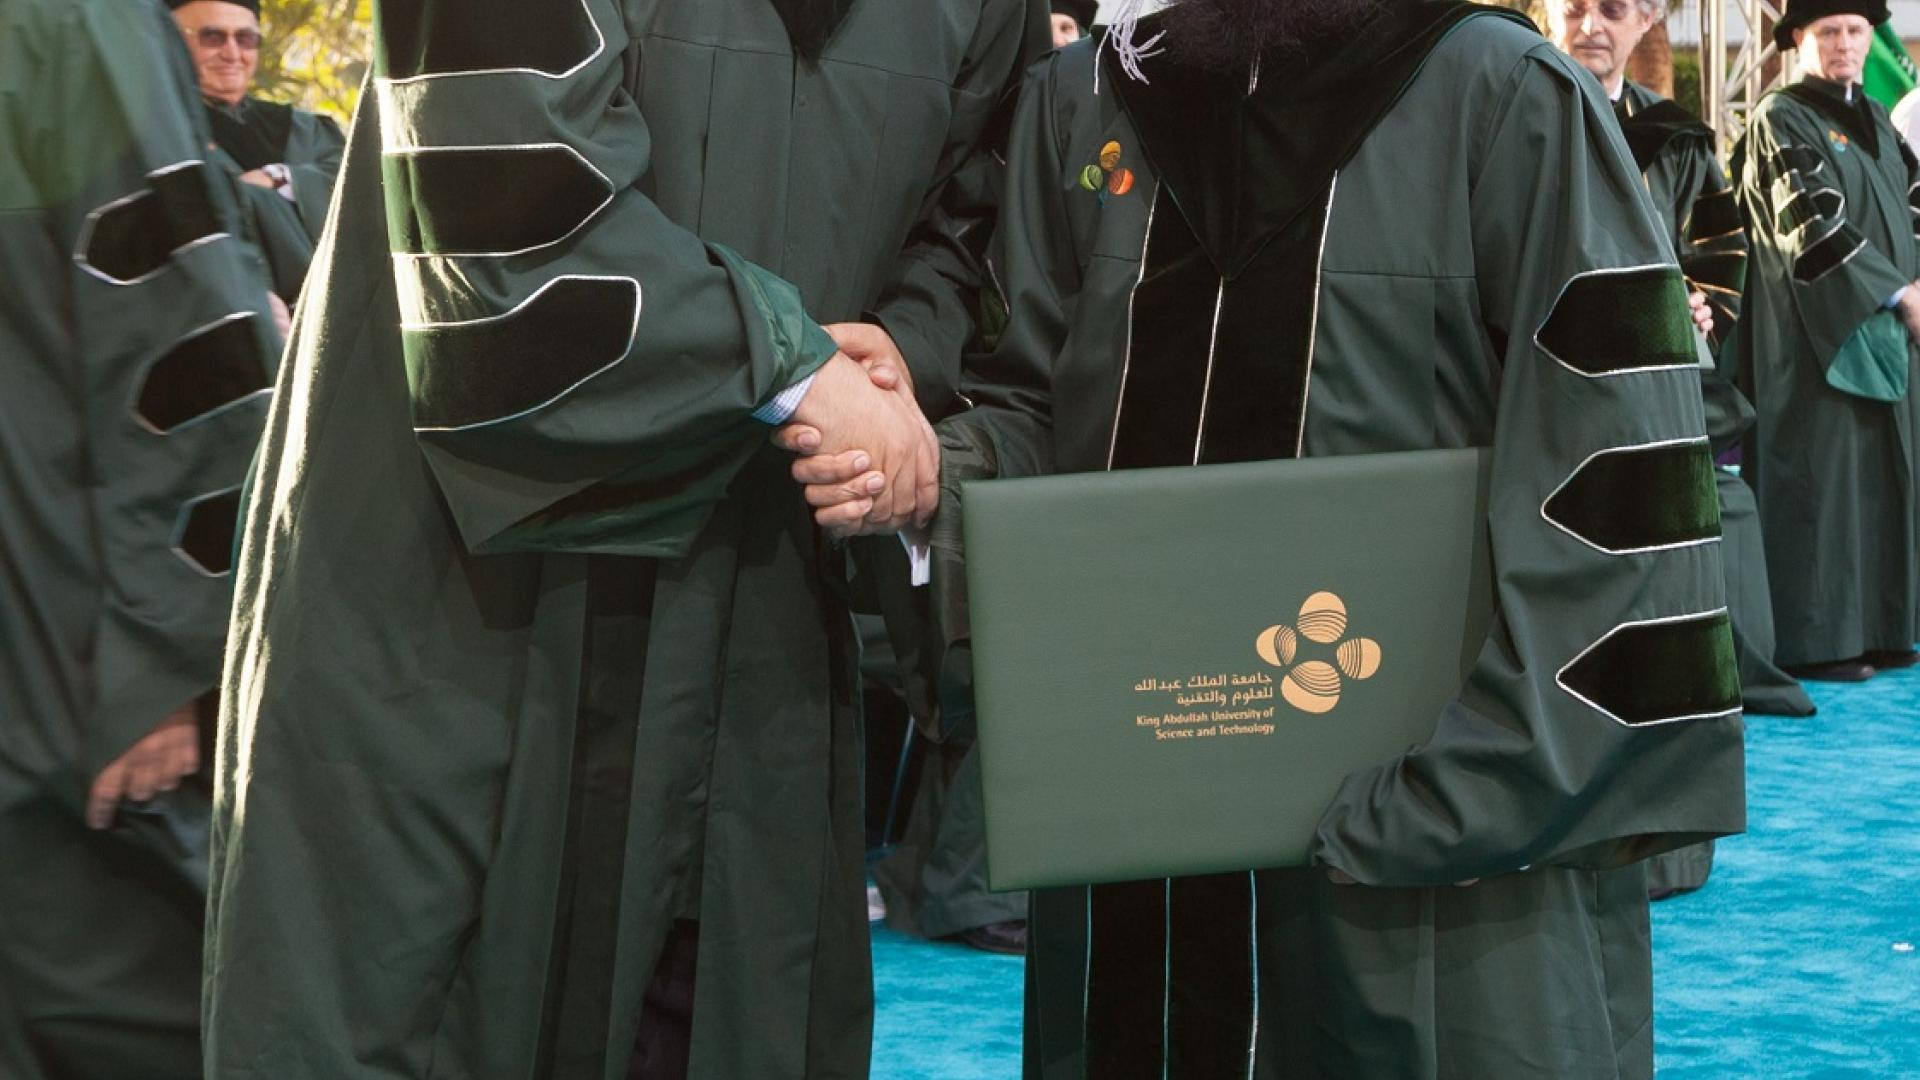 Professor Alouini with Fahd Khan during graduation ceremony